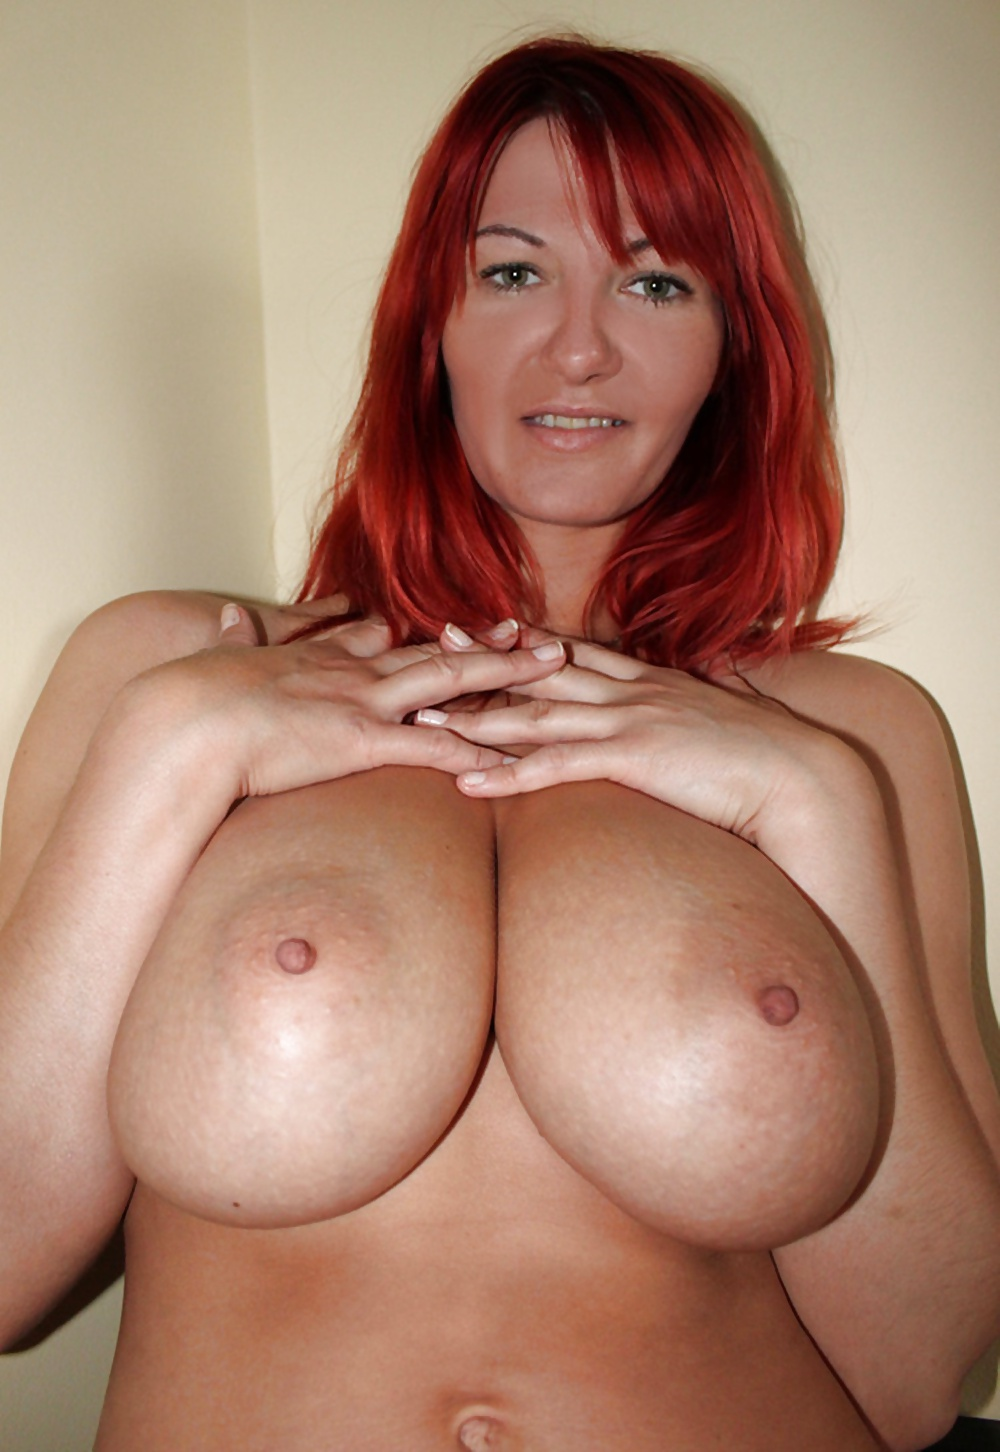 Sexy busty redhead mature — 7